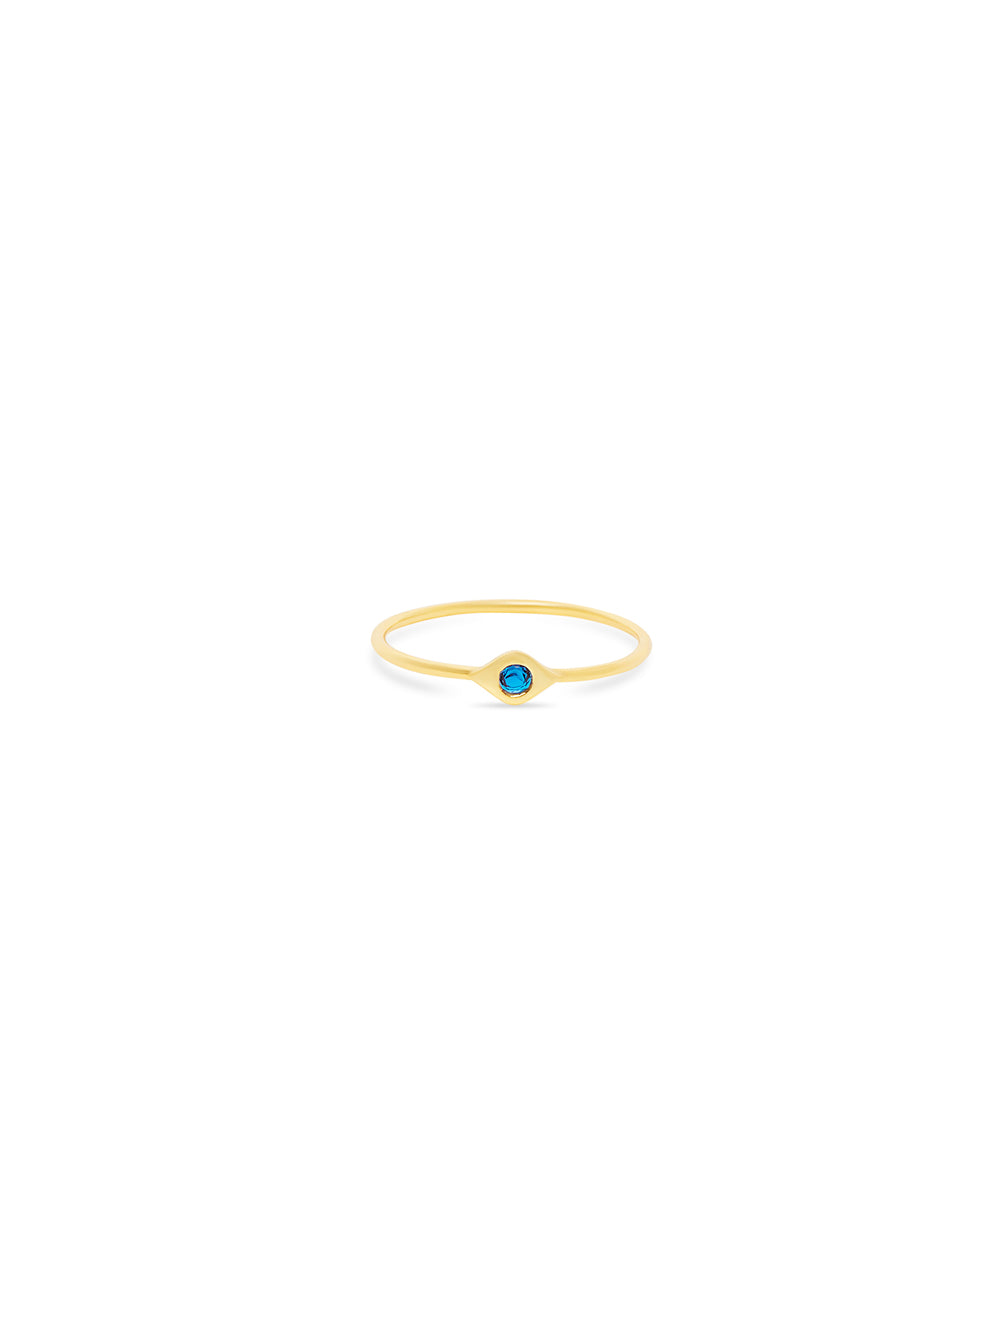 THE MINI EVIL EYE GEM STONE RING (CHAPTER II BY GREG YÜNA X THE M JEWELERS)